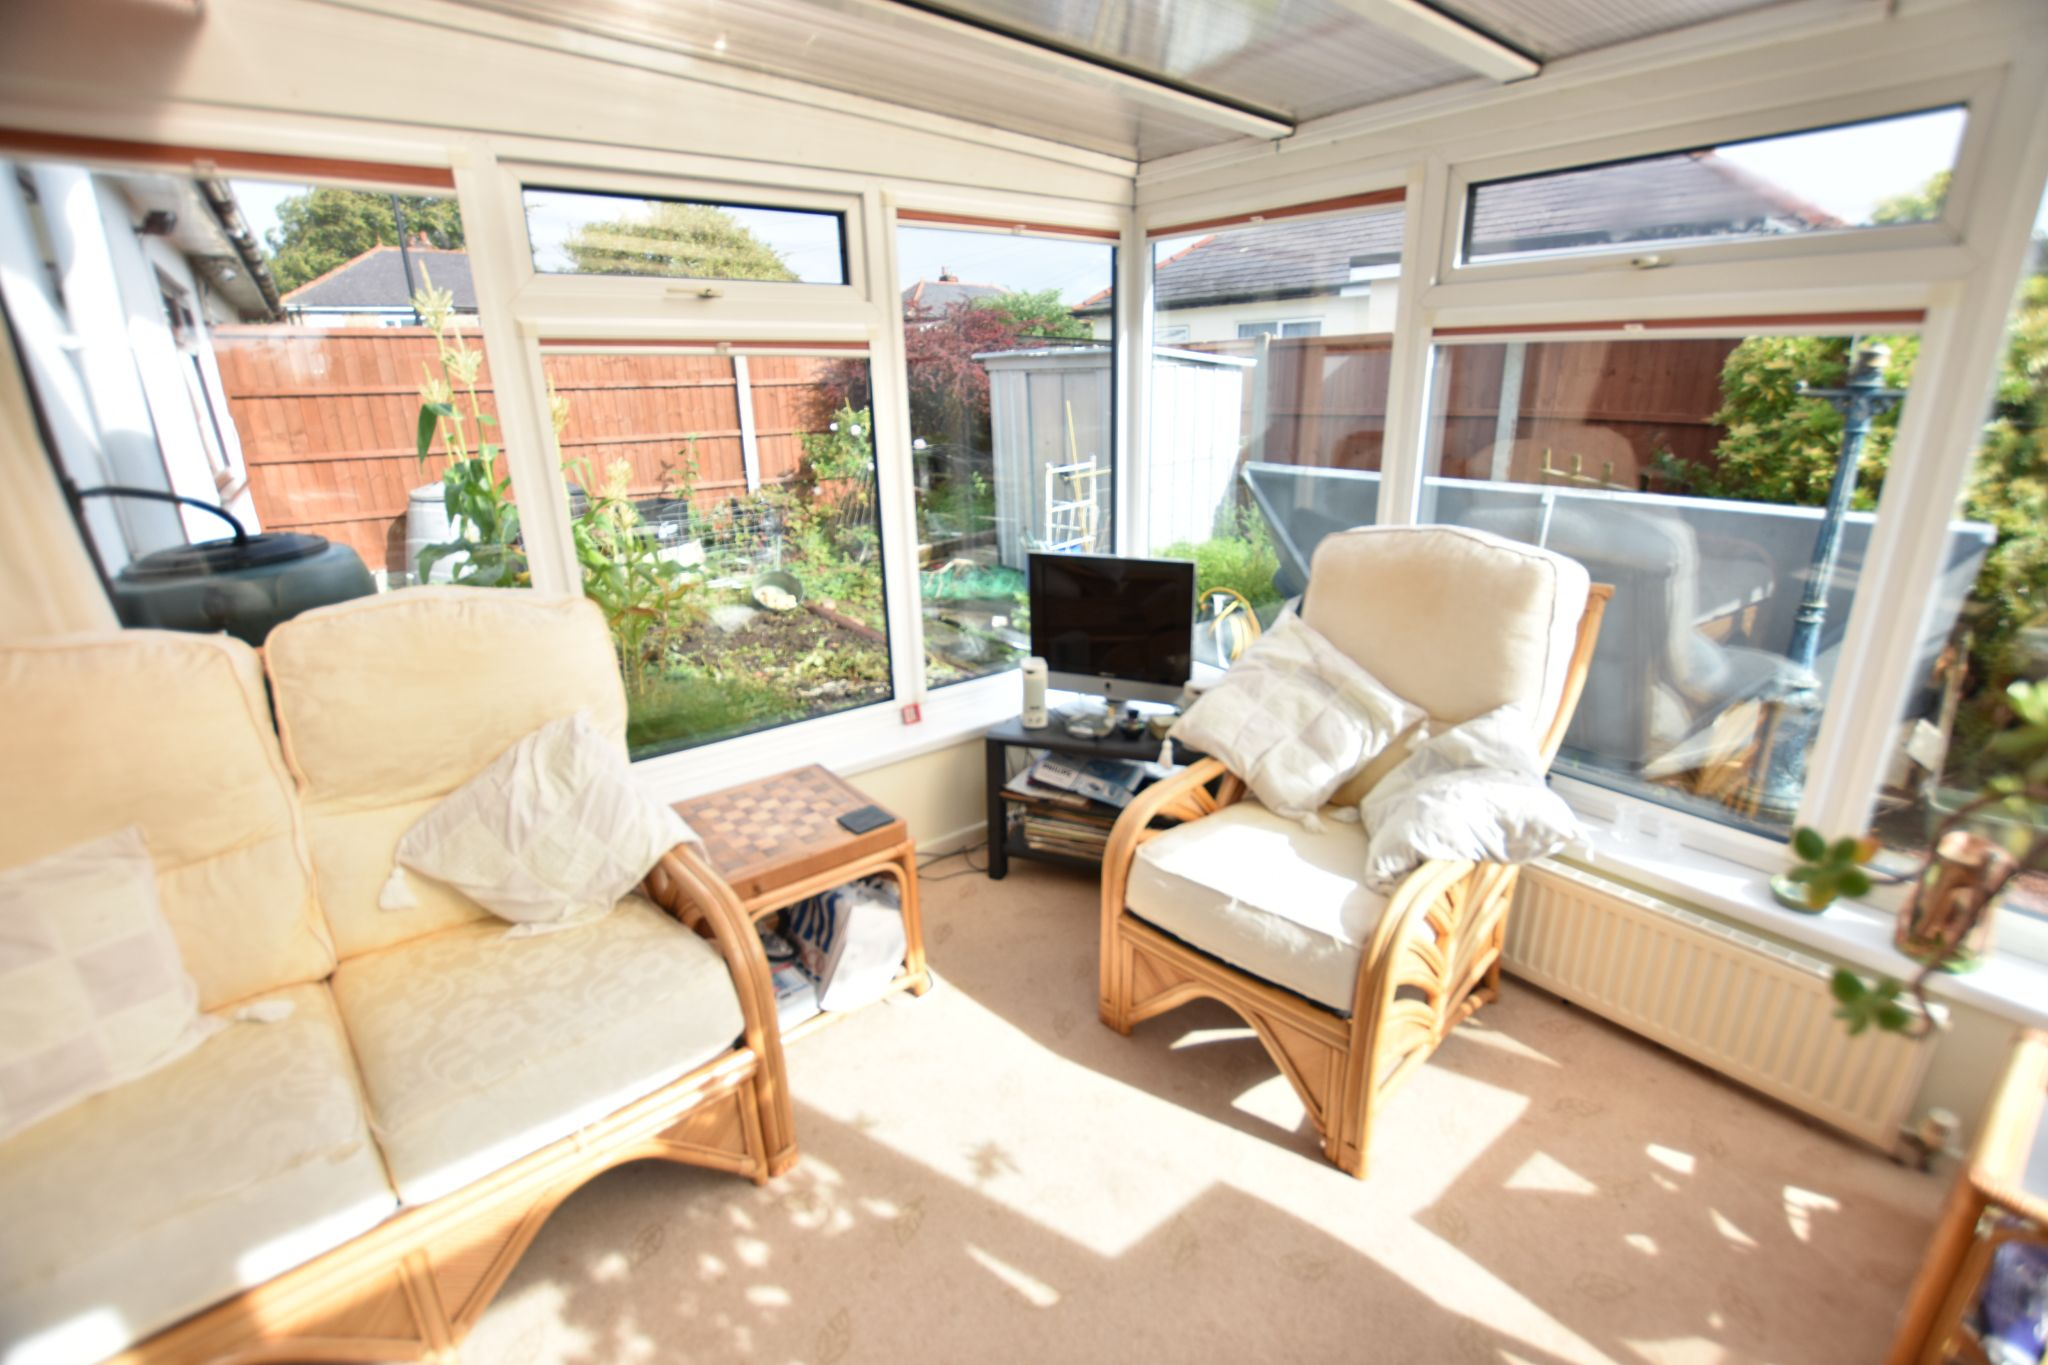 3 bedroom semi-detached bungalow Sold STC in Preston - Conservatory